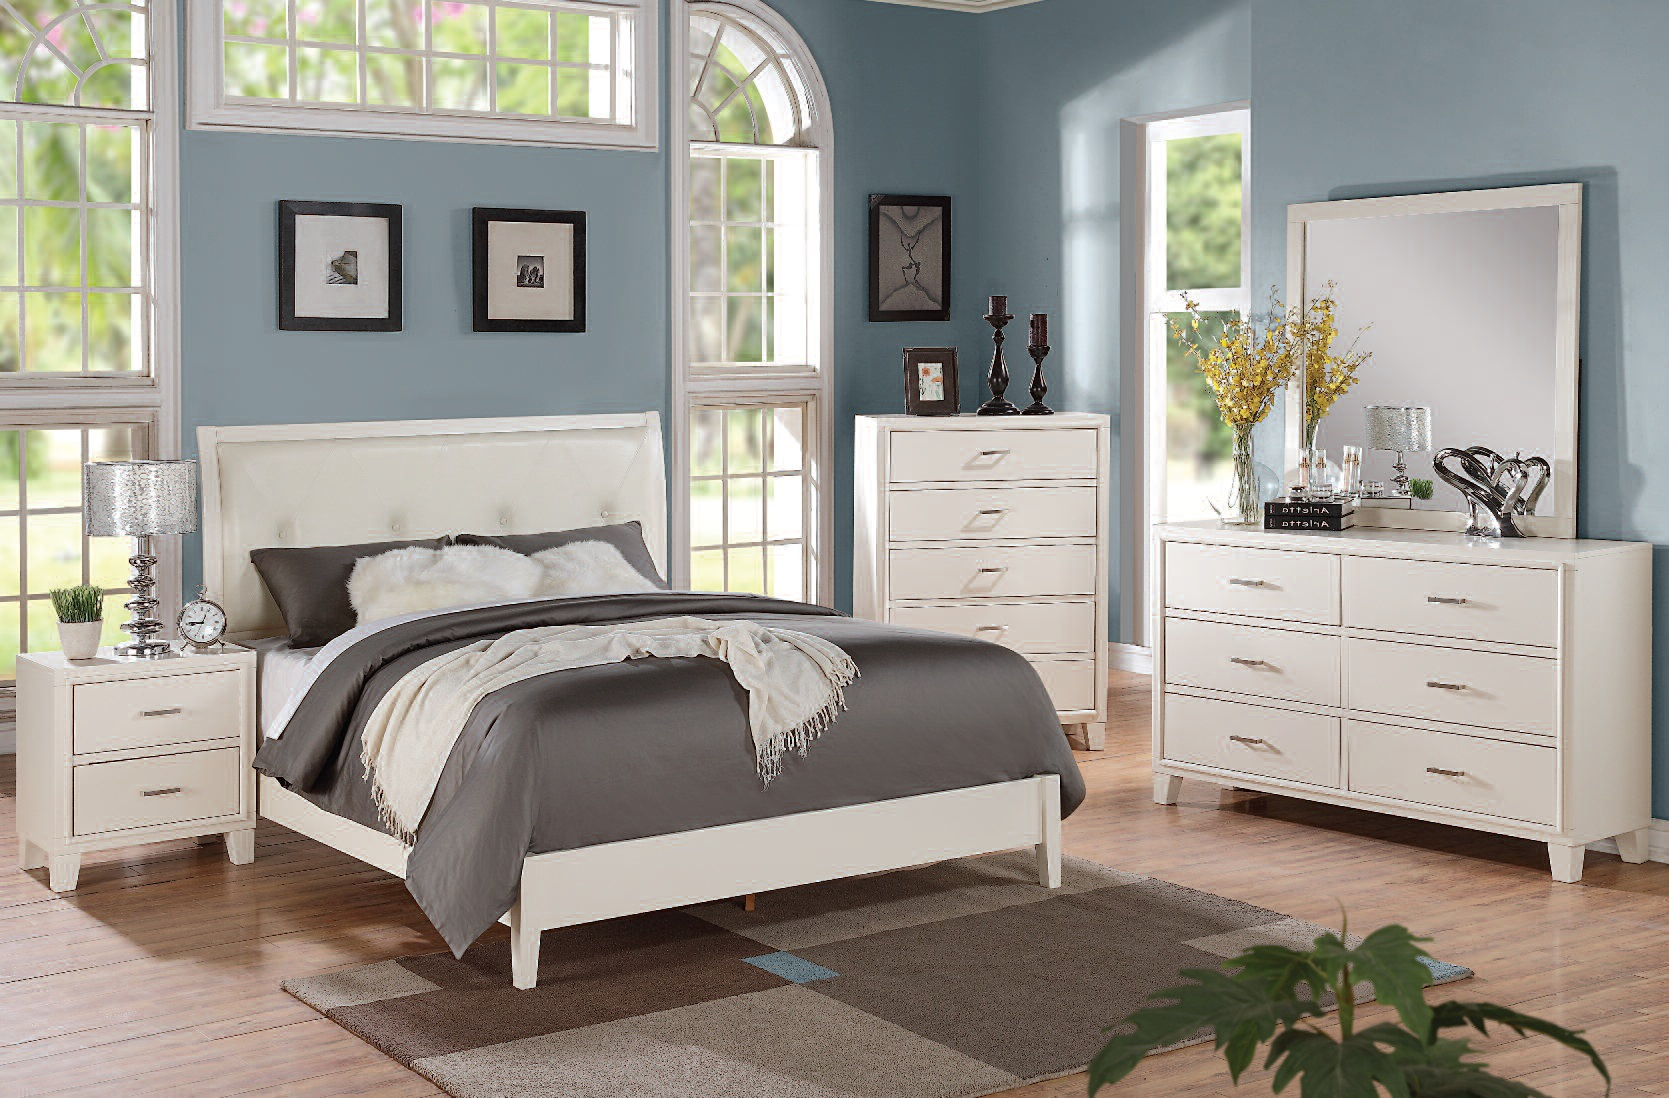 Tyler Contemporary Faux Leather Cream Wood Master Bedroom Set The Classy Home